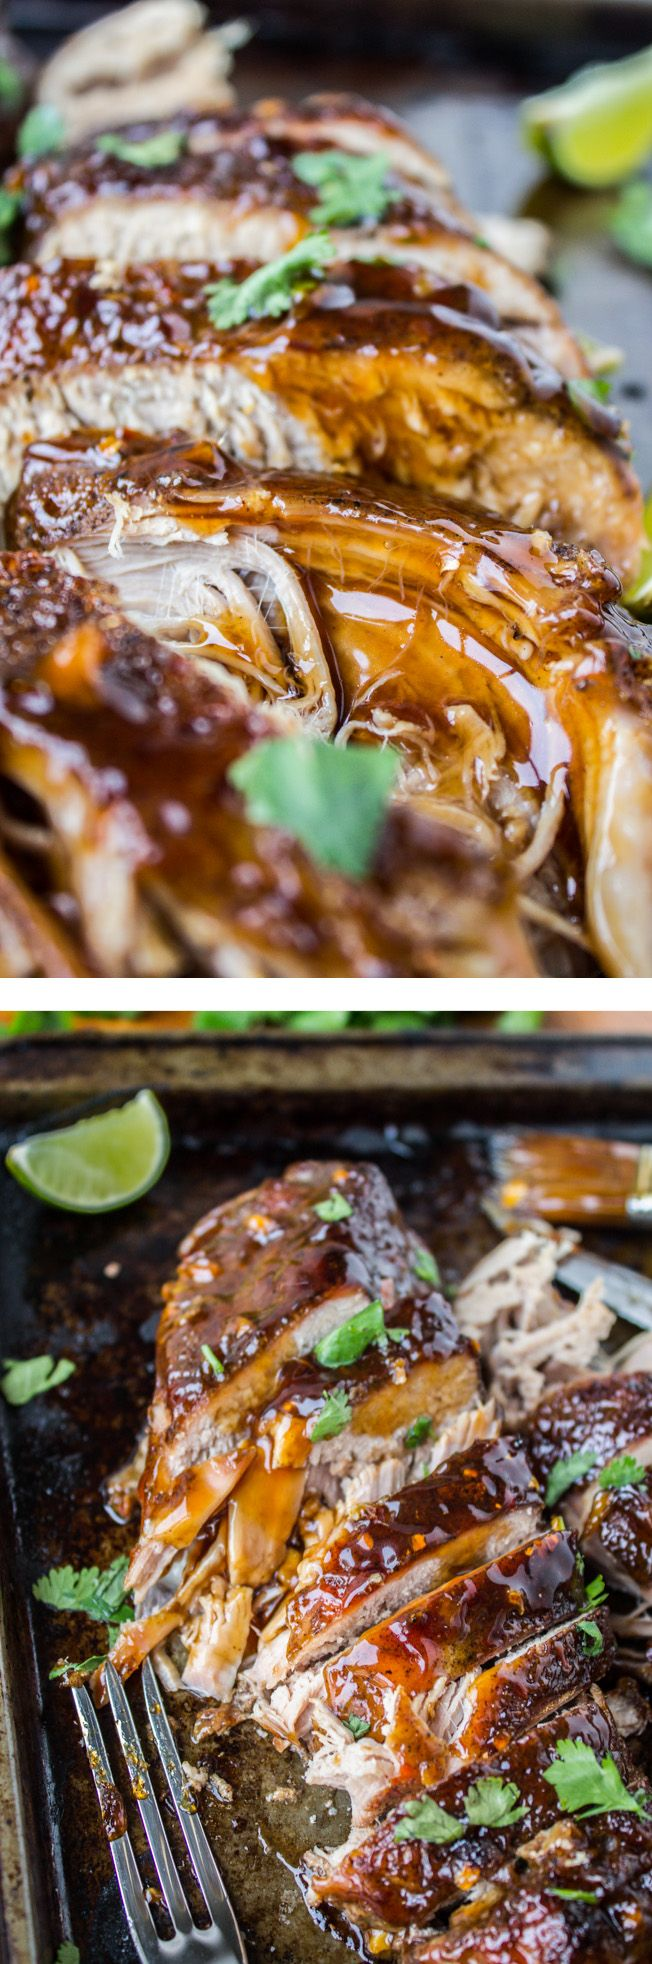 Crockpot Asian Pork Tenderloin with Ginger Glaze // It's easy, it's healthy, it's delicious. Perfect meal for company or any weeknight!